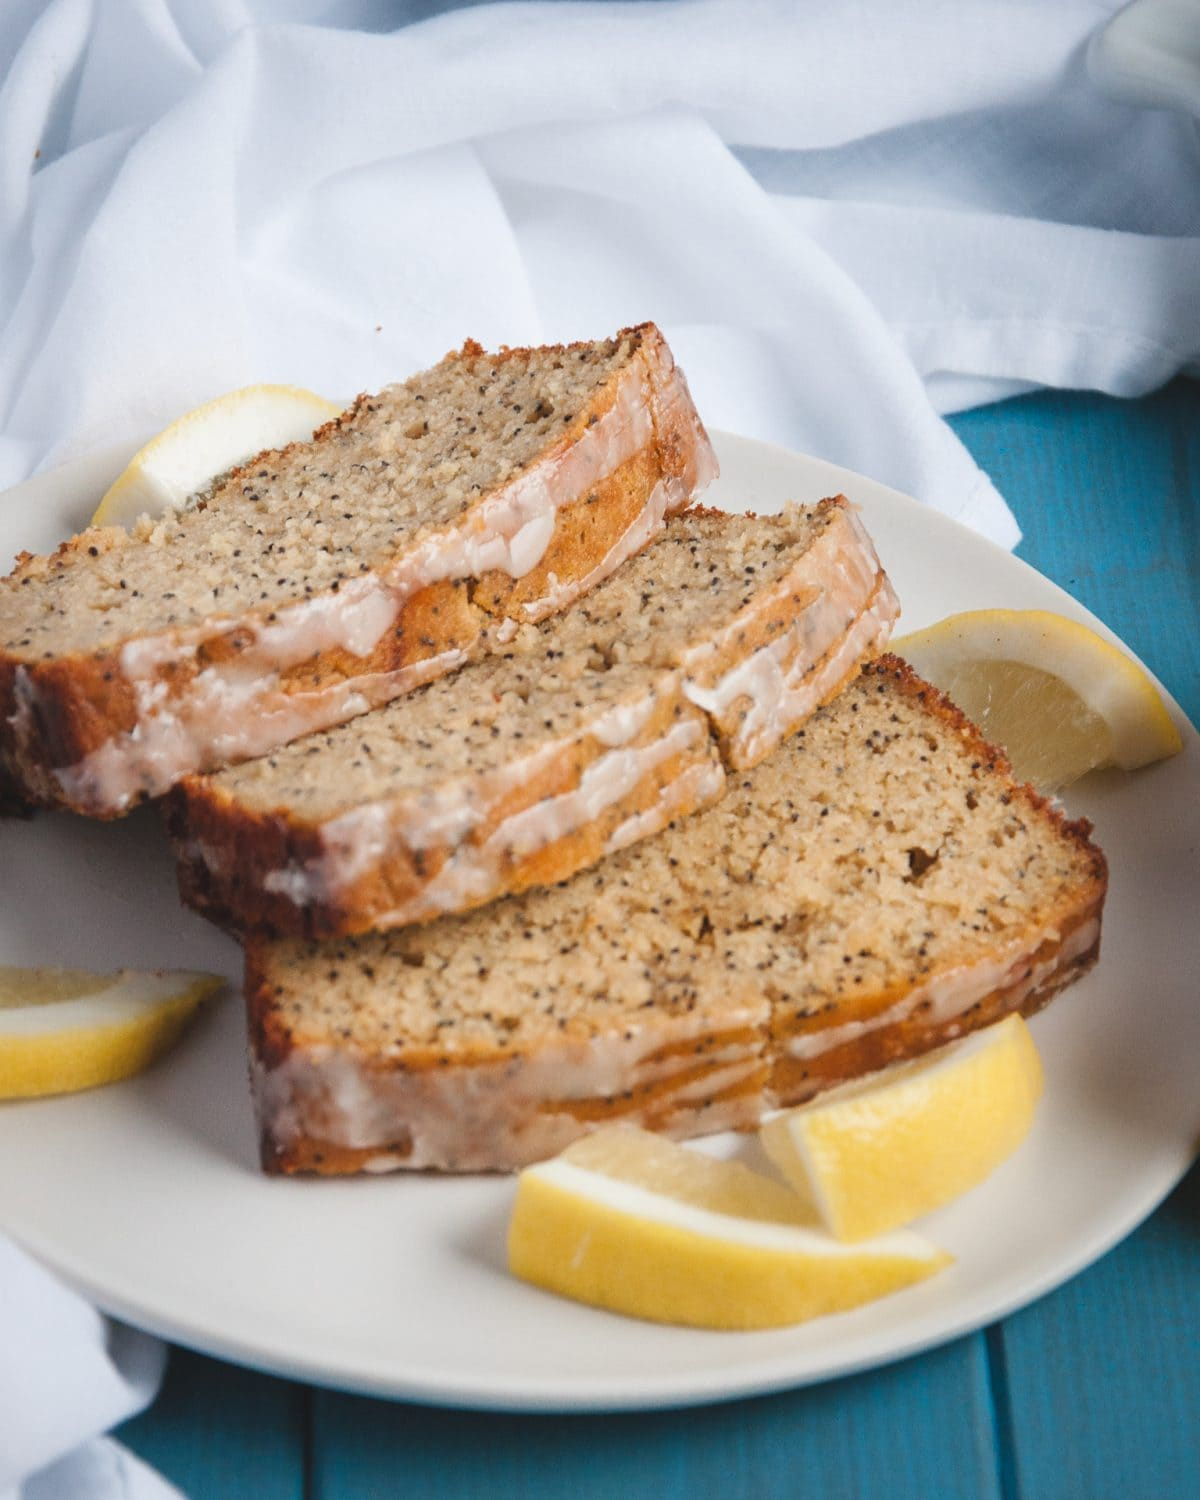 slices of Whole Wheat Lemon Poppy Seed Bread on a white plate